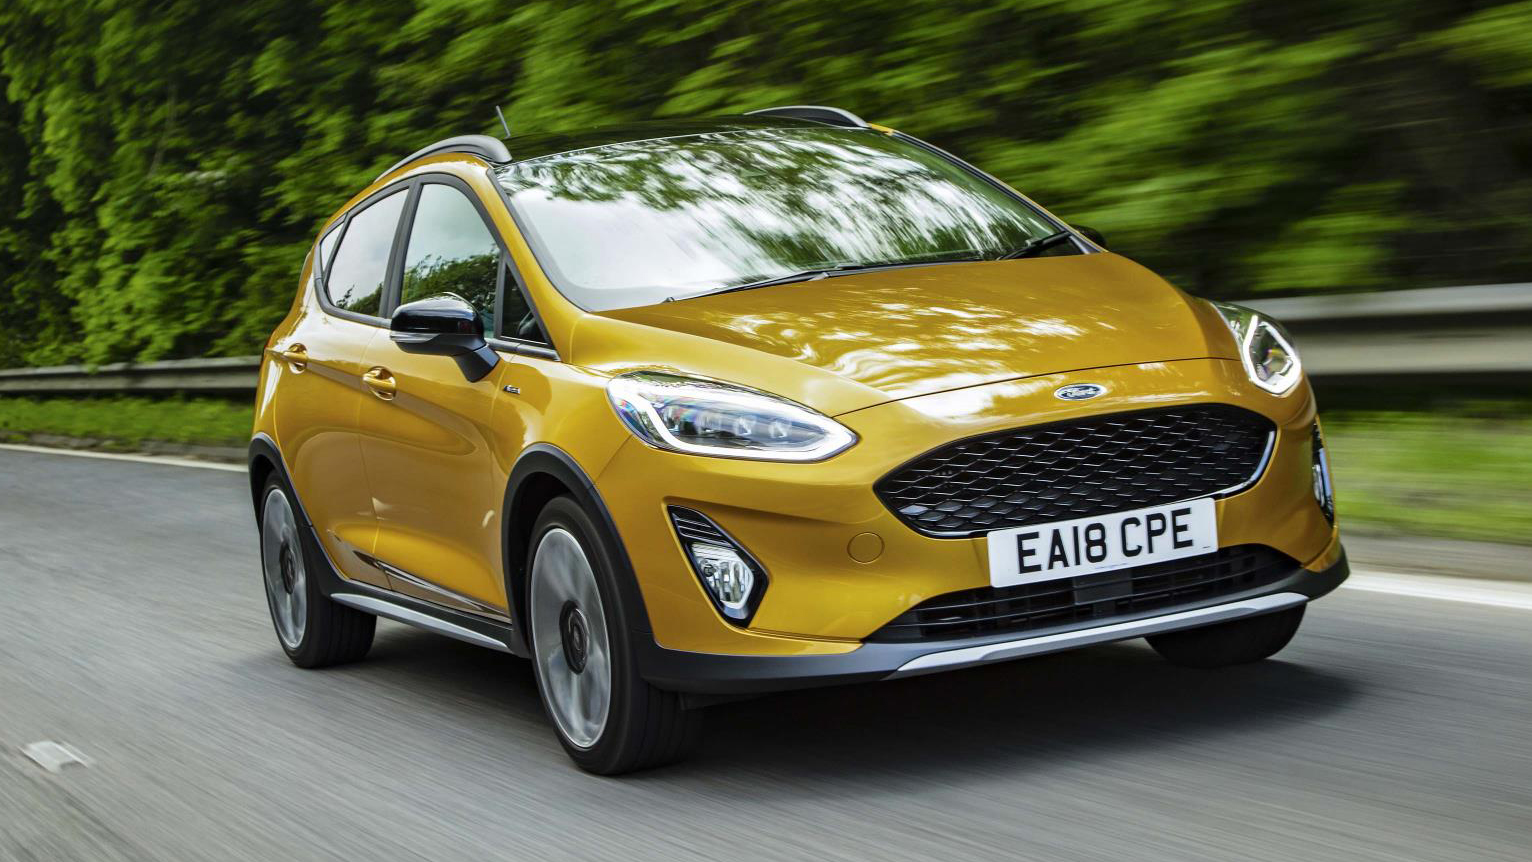 ford fiesta active x review 140bhp crossover in the uk top gear. Black Bedroom Furniture Sets. Home Design Ideas